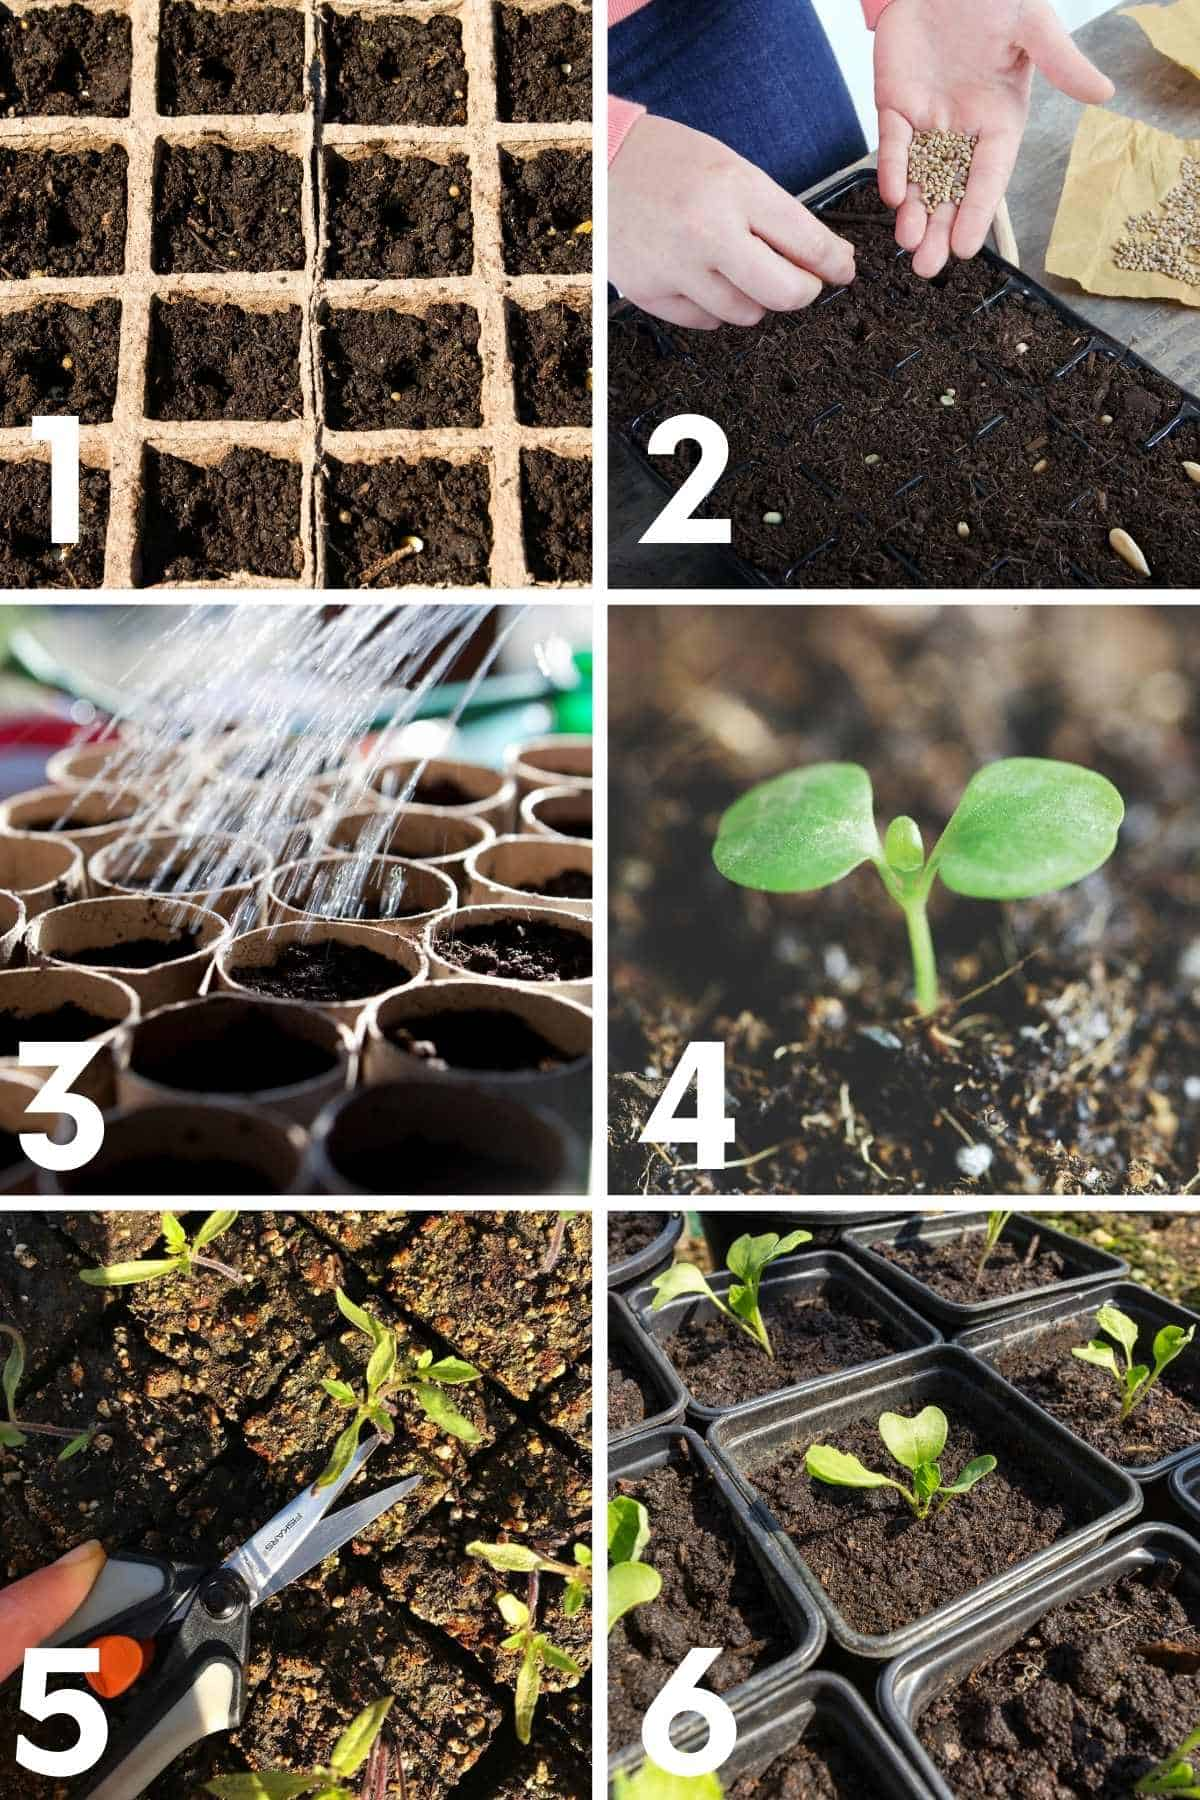 A numbered image shows how to grow Brussels sprouts from seed, step by step